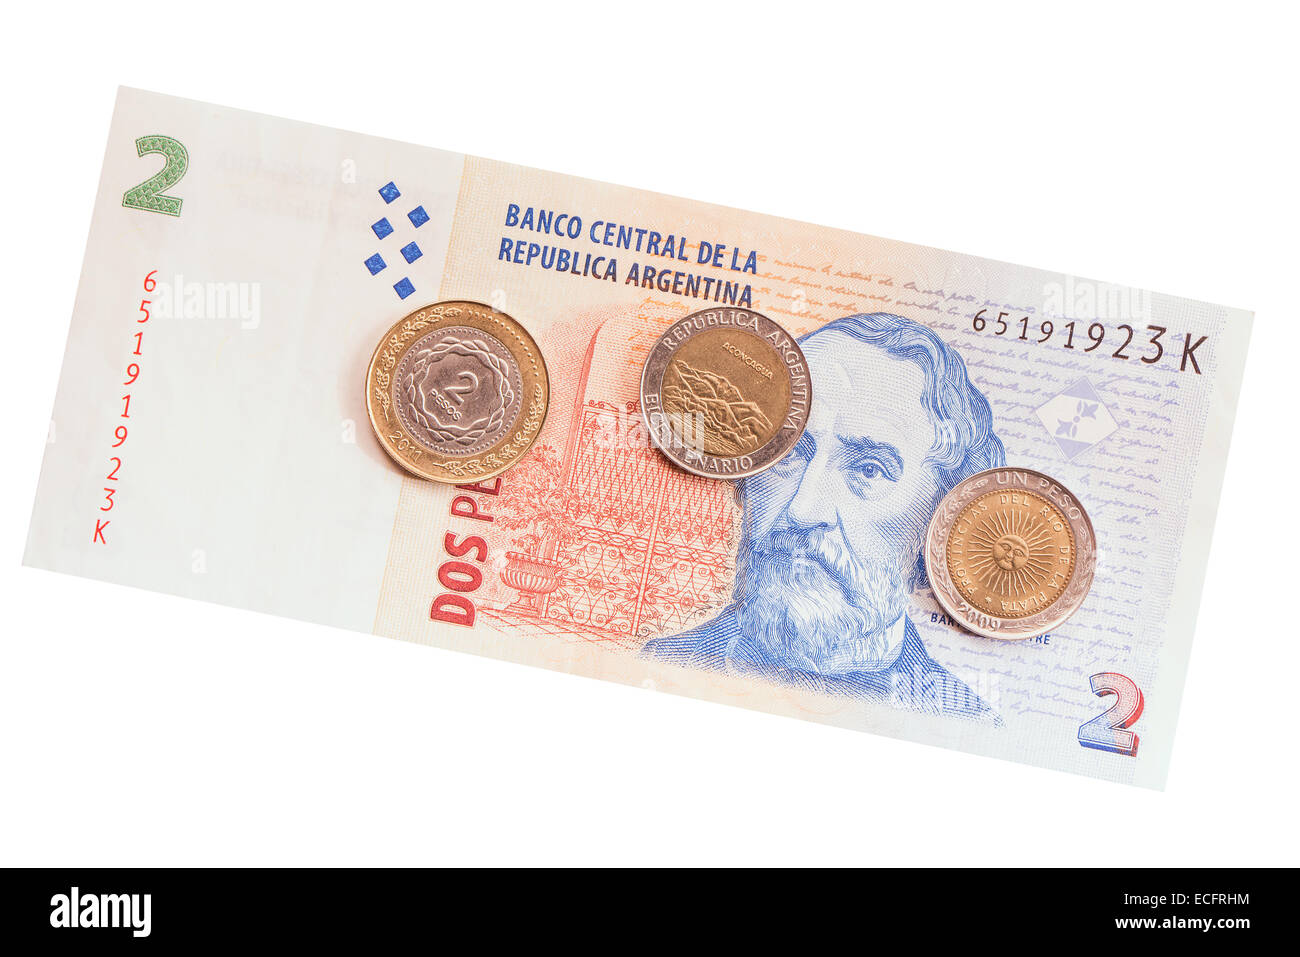 Argentinean coins on two pesos banknote background. - Stock Image